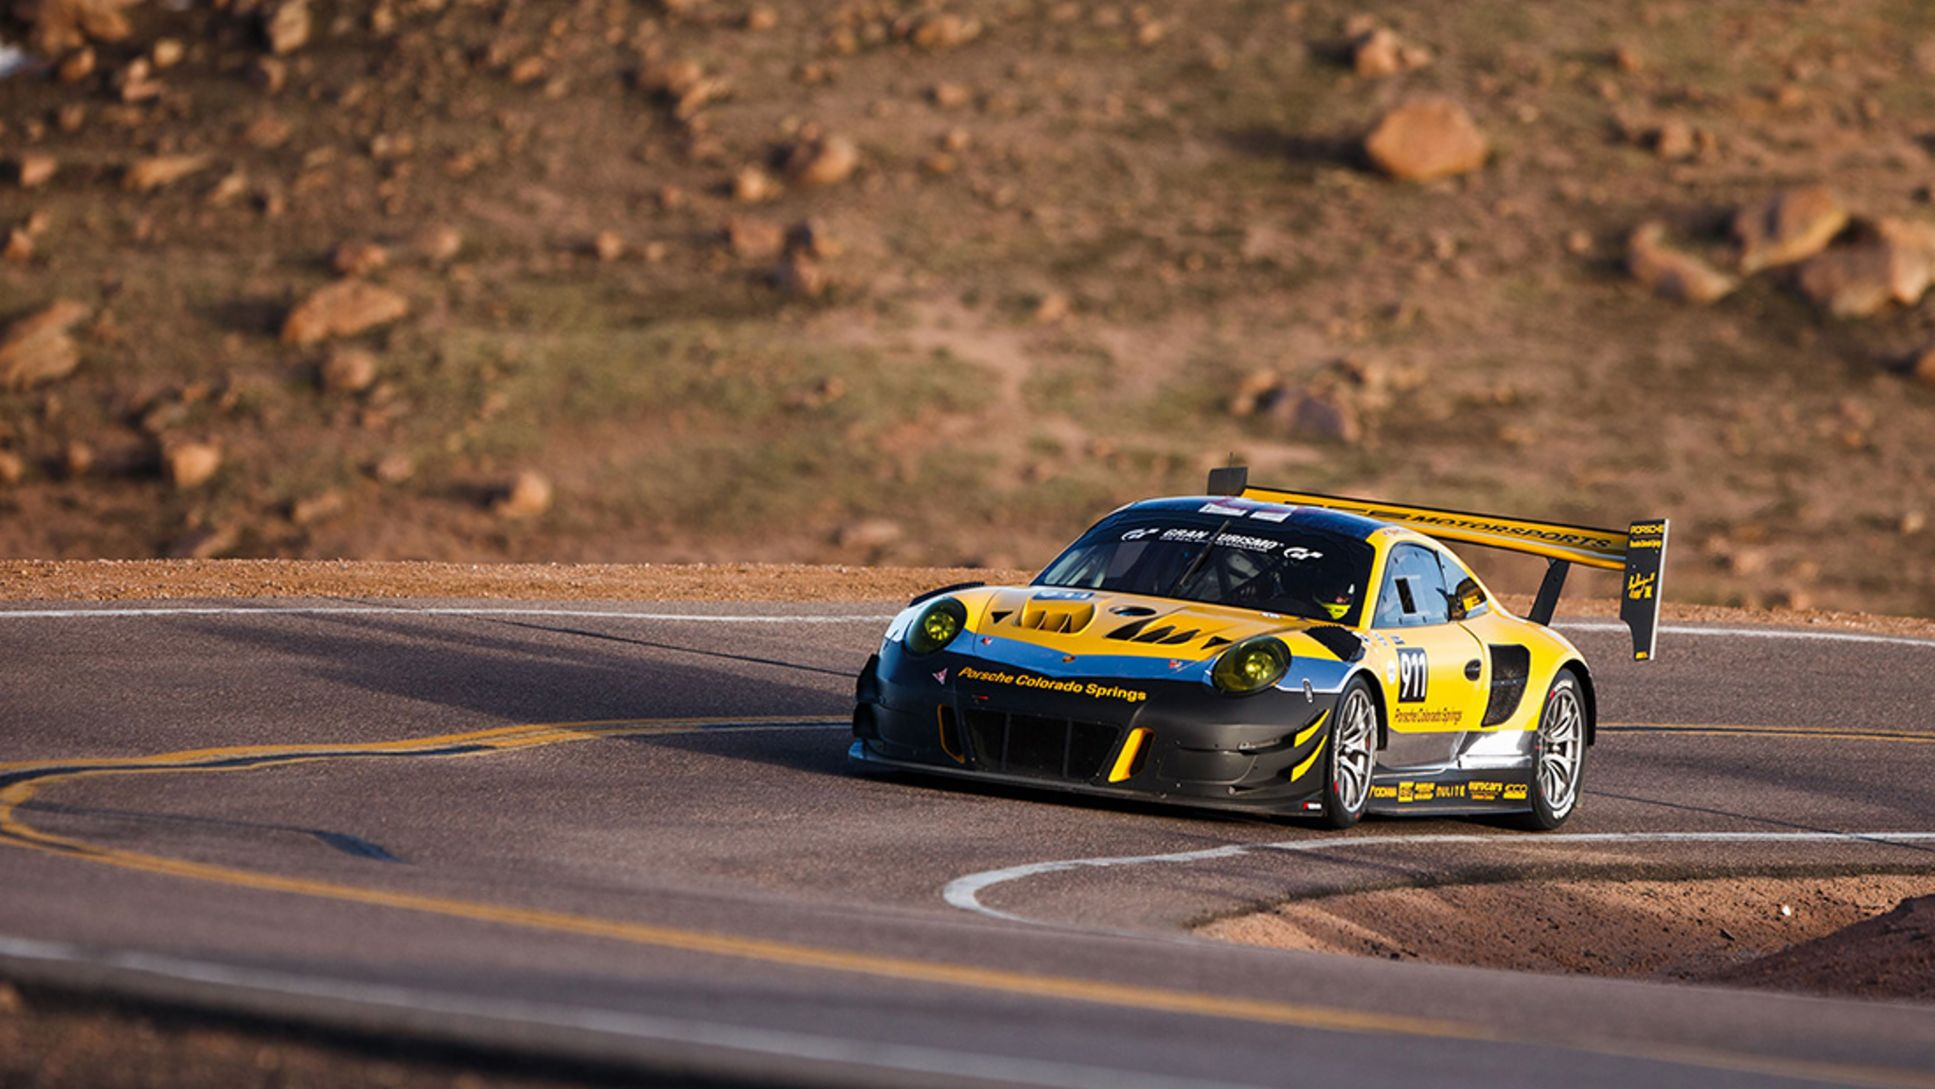 GT3 R, Pikes Peak International Hill Climb, Colorado, 2019, Porsche AG